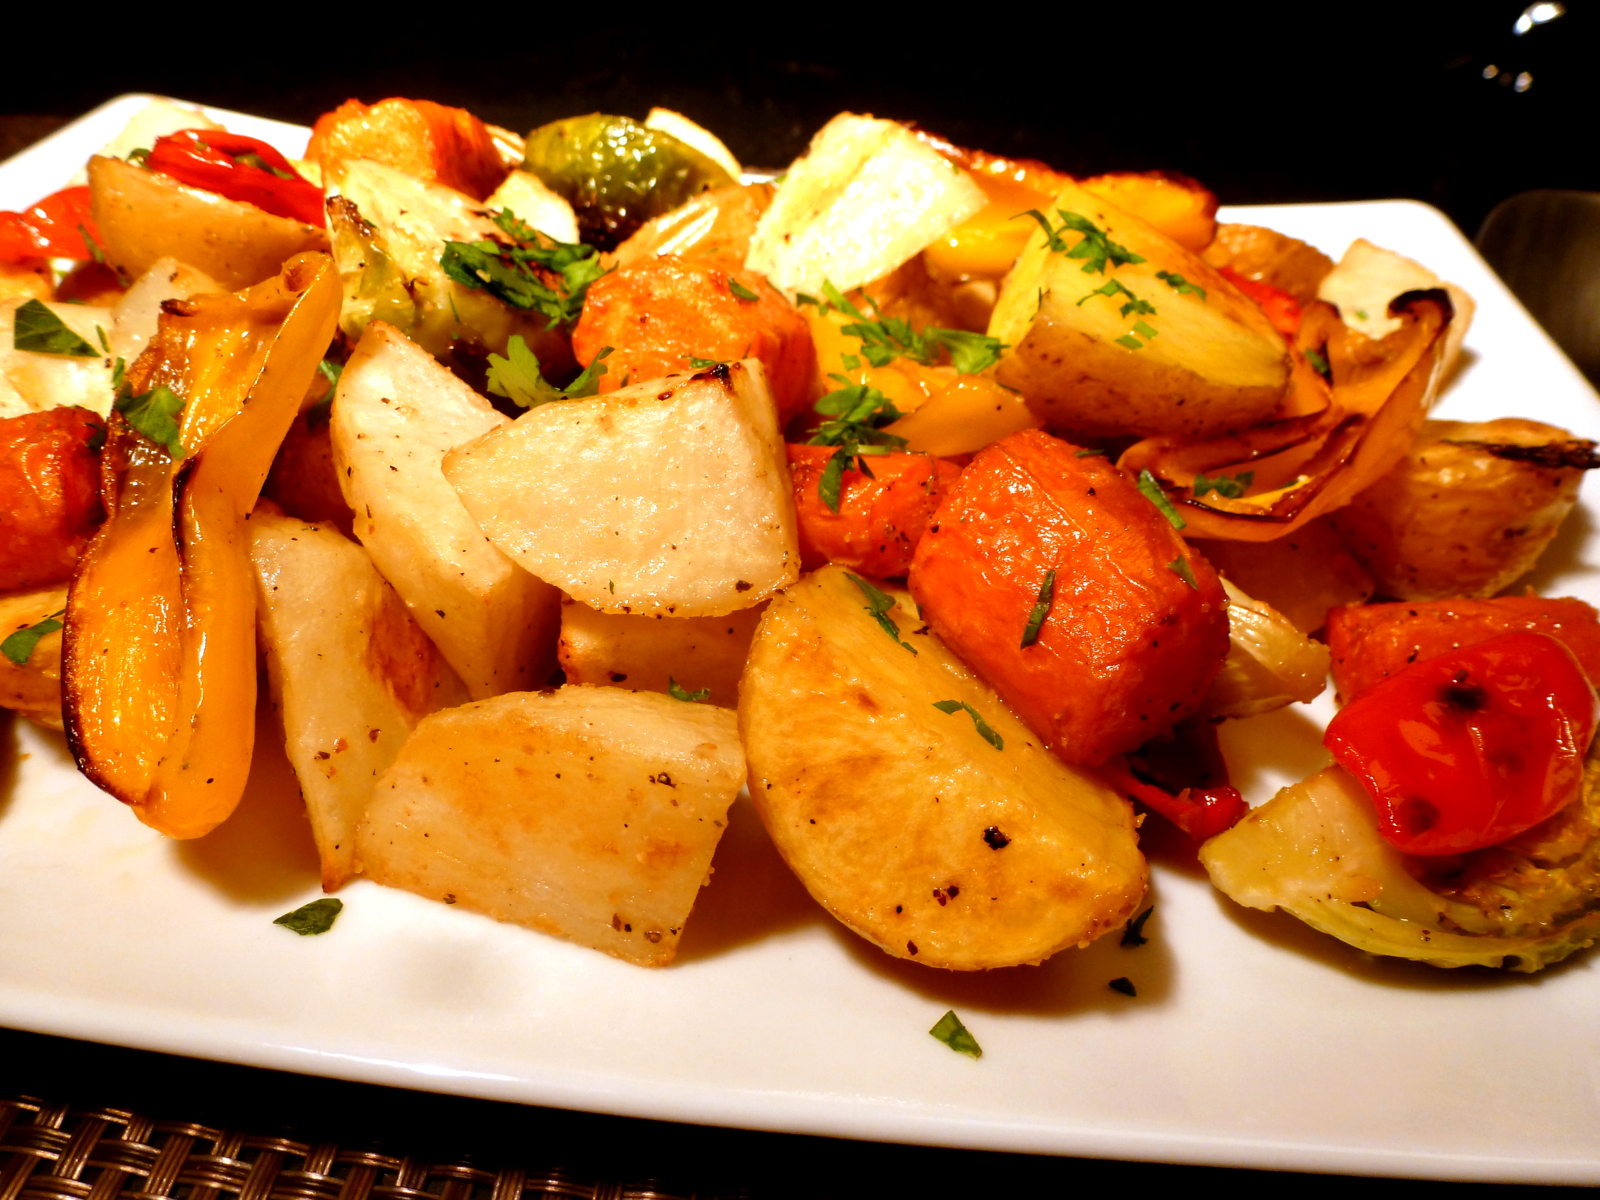 Roasted mixed vegetables are easy to prepare and can be served hot or cold.